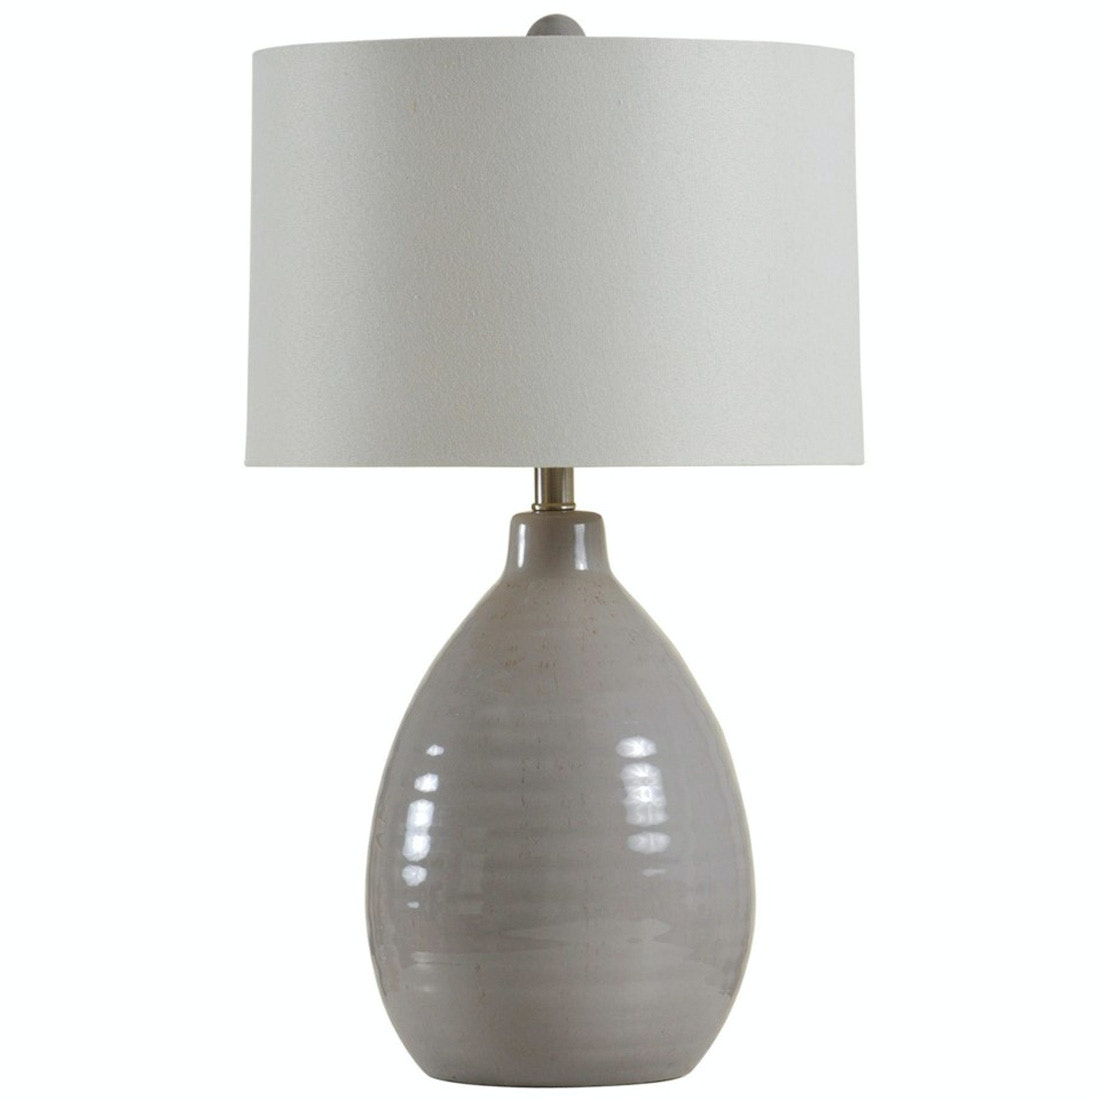 Stylecraft Lamps Cool Gray Ceramic Table Lamp 102031